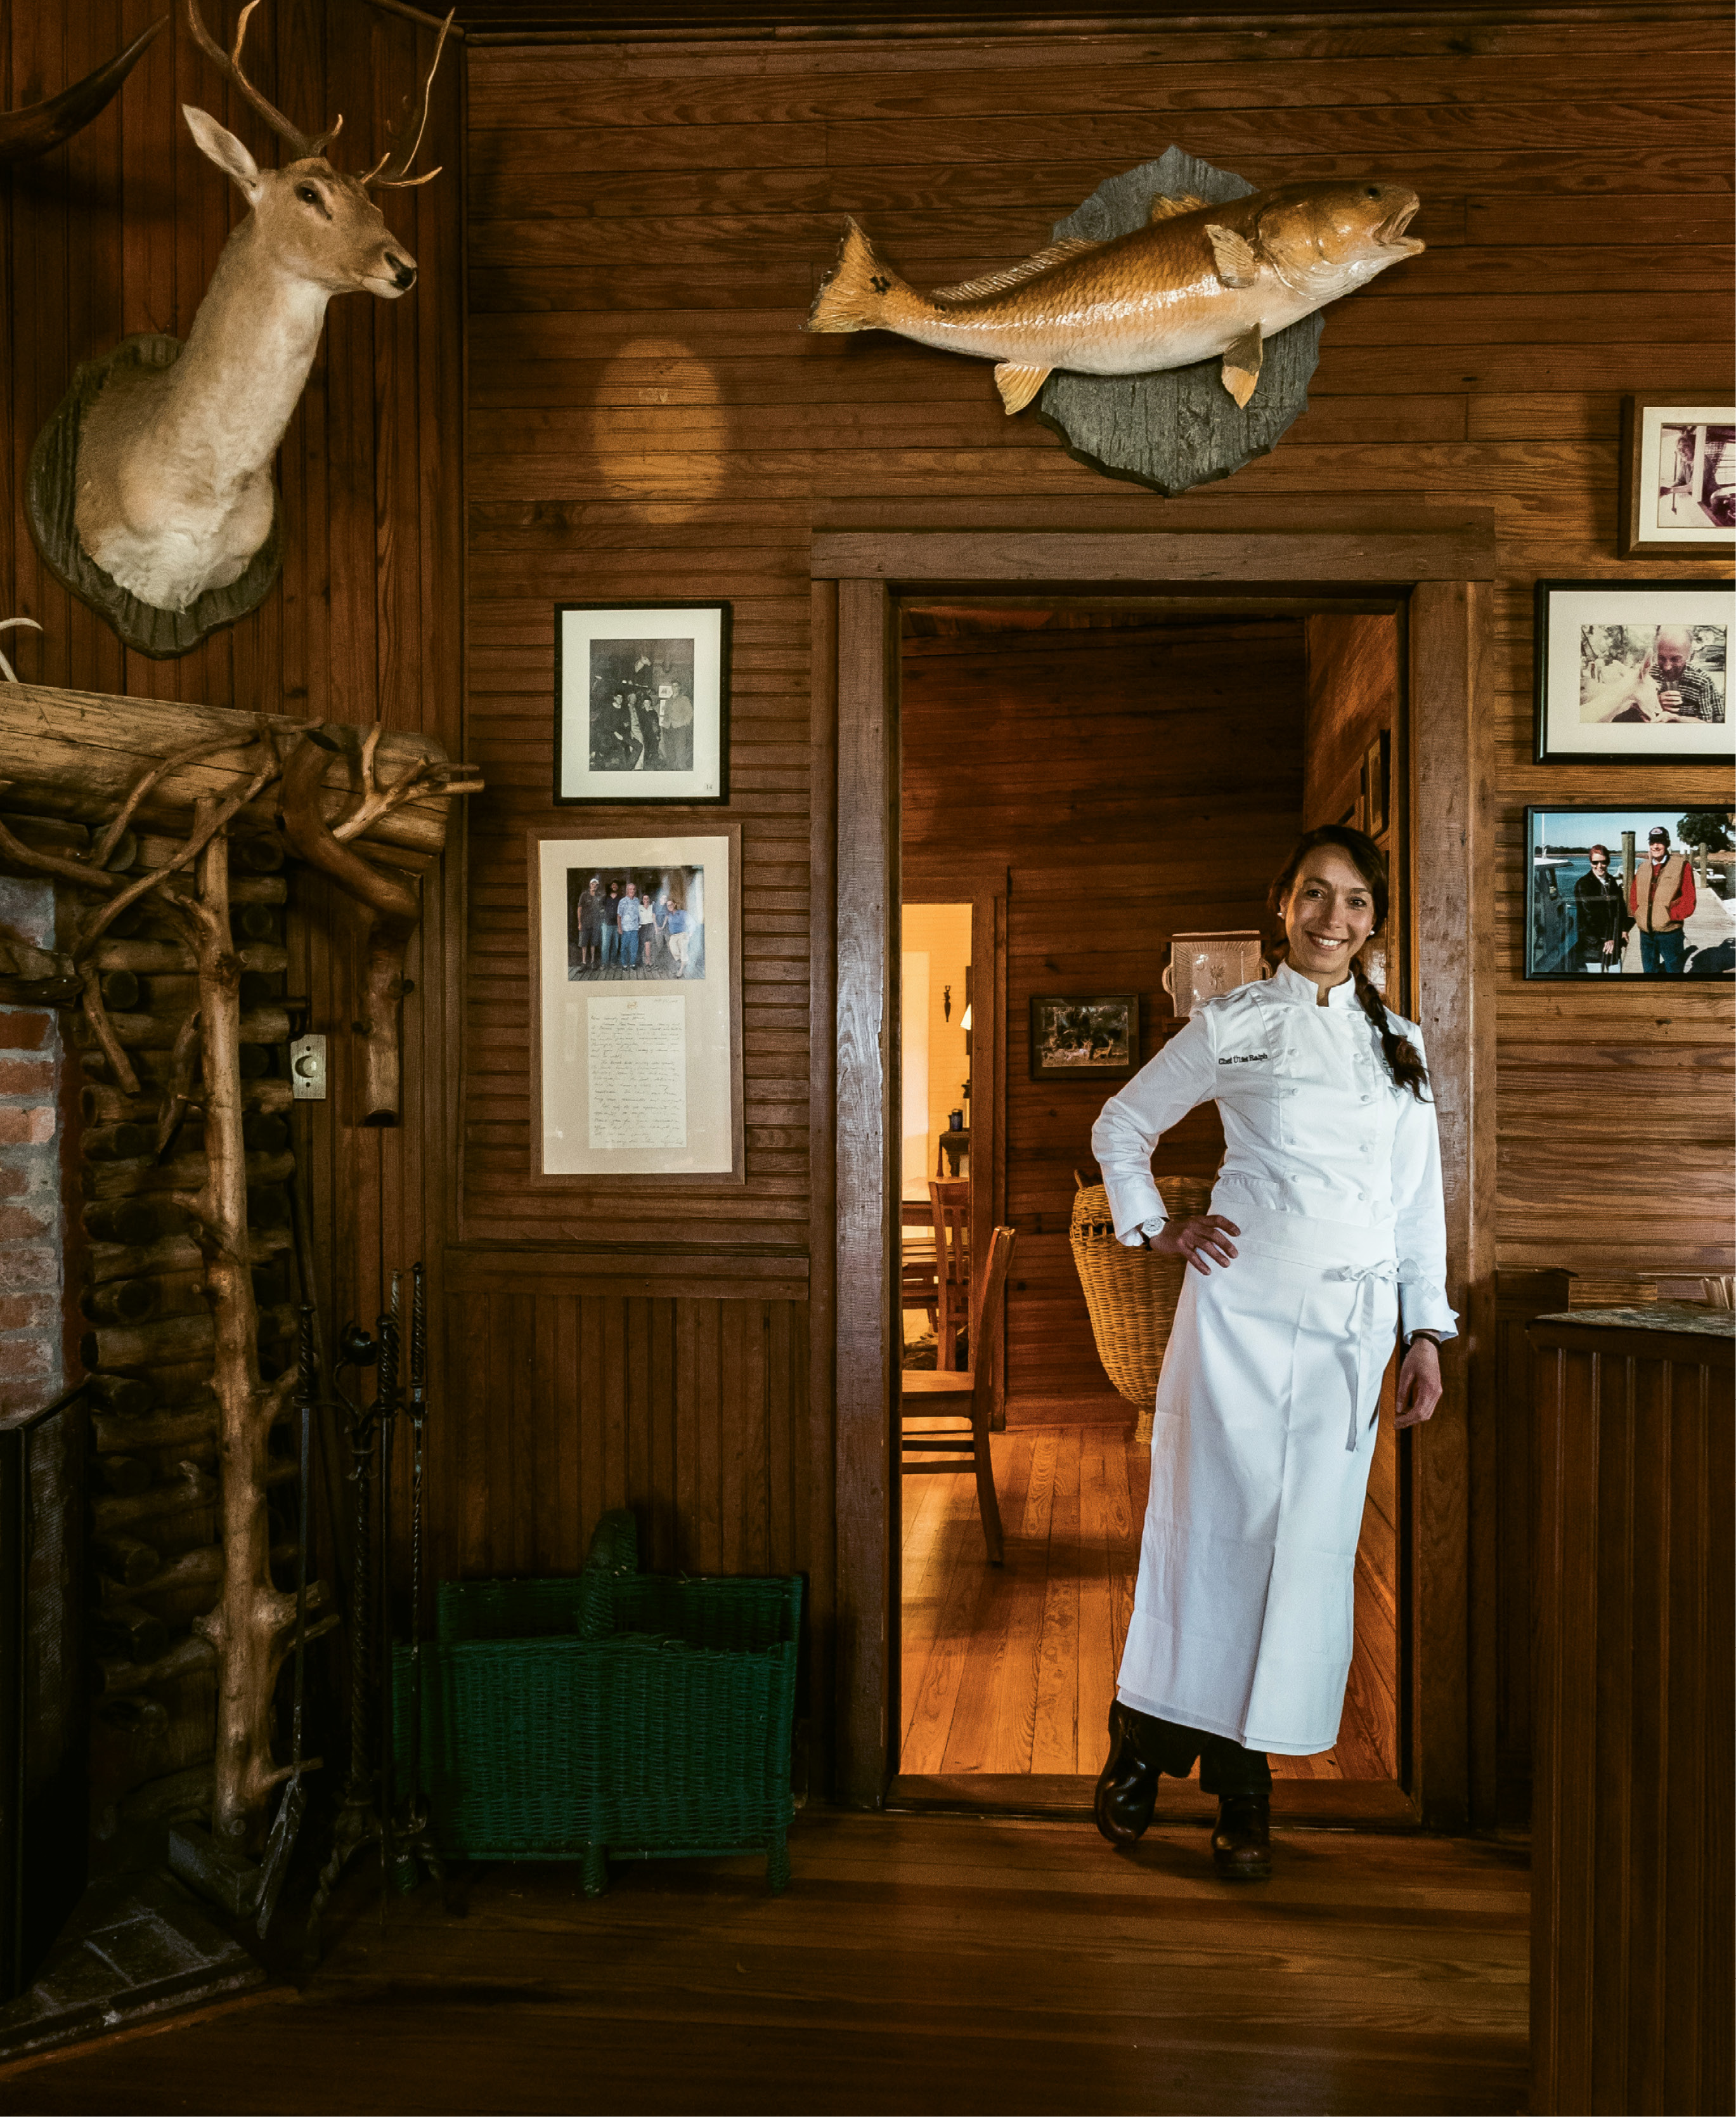 Lodge FLAvor: A native of Turkey who trained in Atlanta, Charleston, and New York, chef Ülfet Özyabasligil Ralph brings elements of Mediterranean cooking to the table.